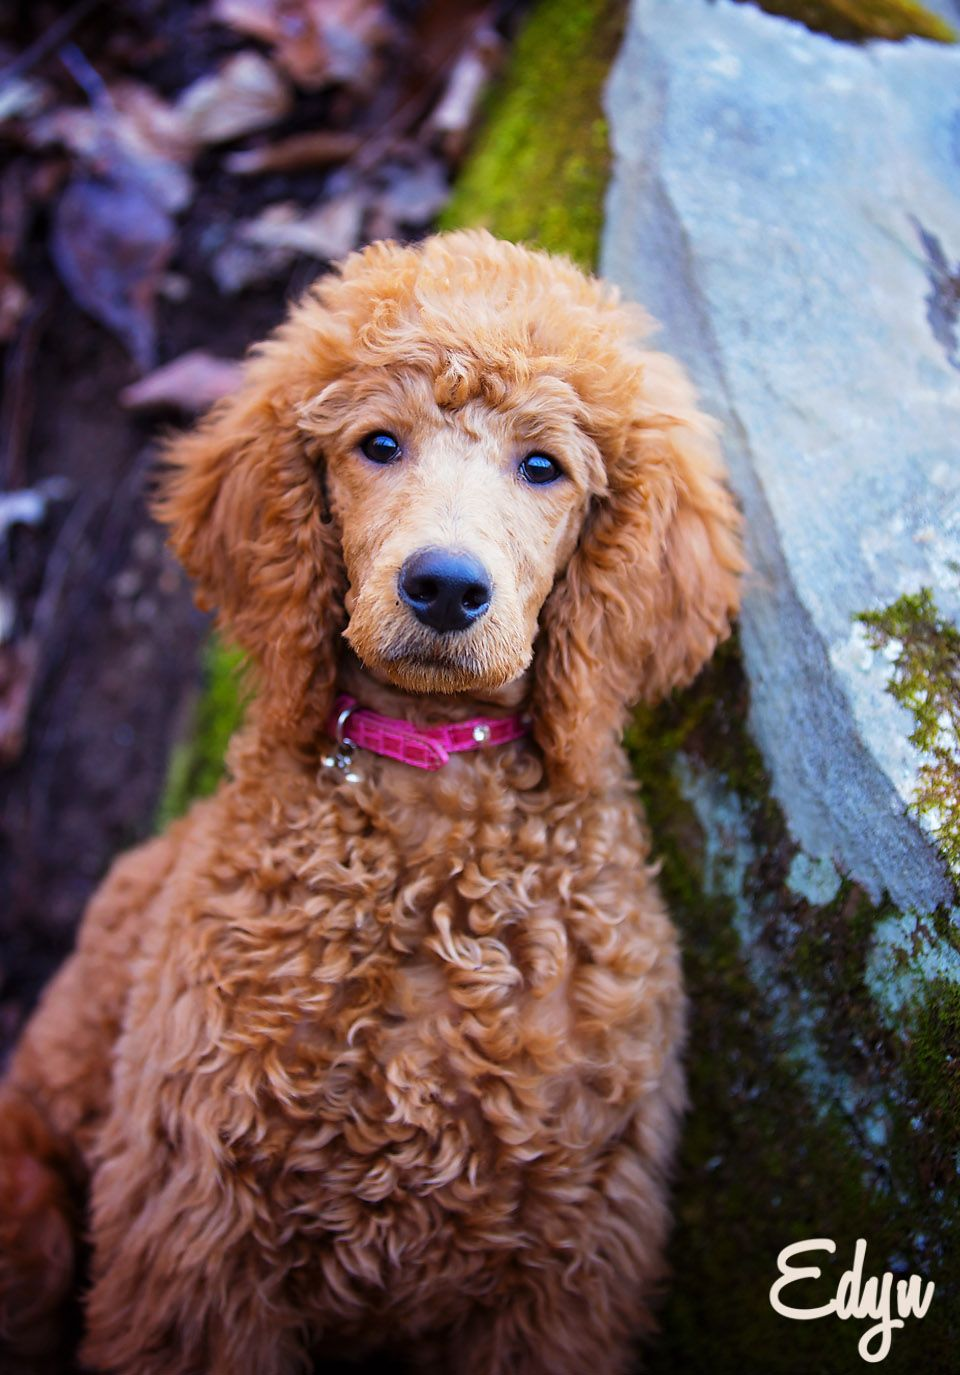 Standard poodle haircuts or of unless soft haircuts standard poodle - This Looks Like Tali When She Was A Pup